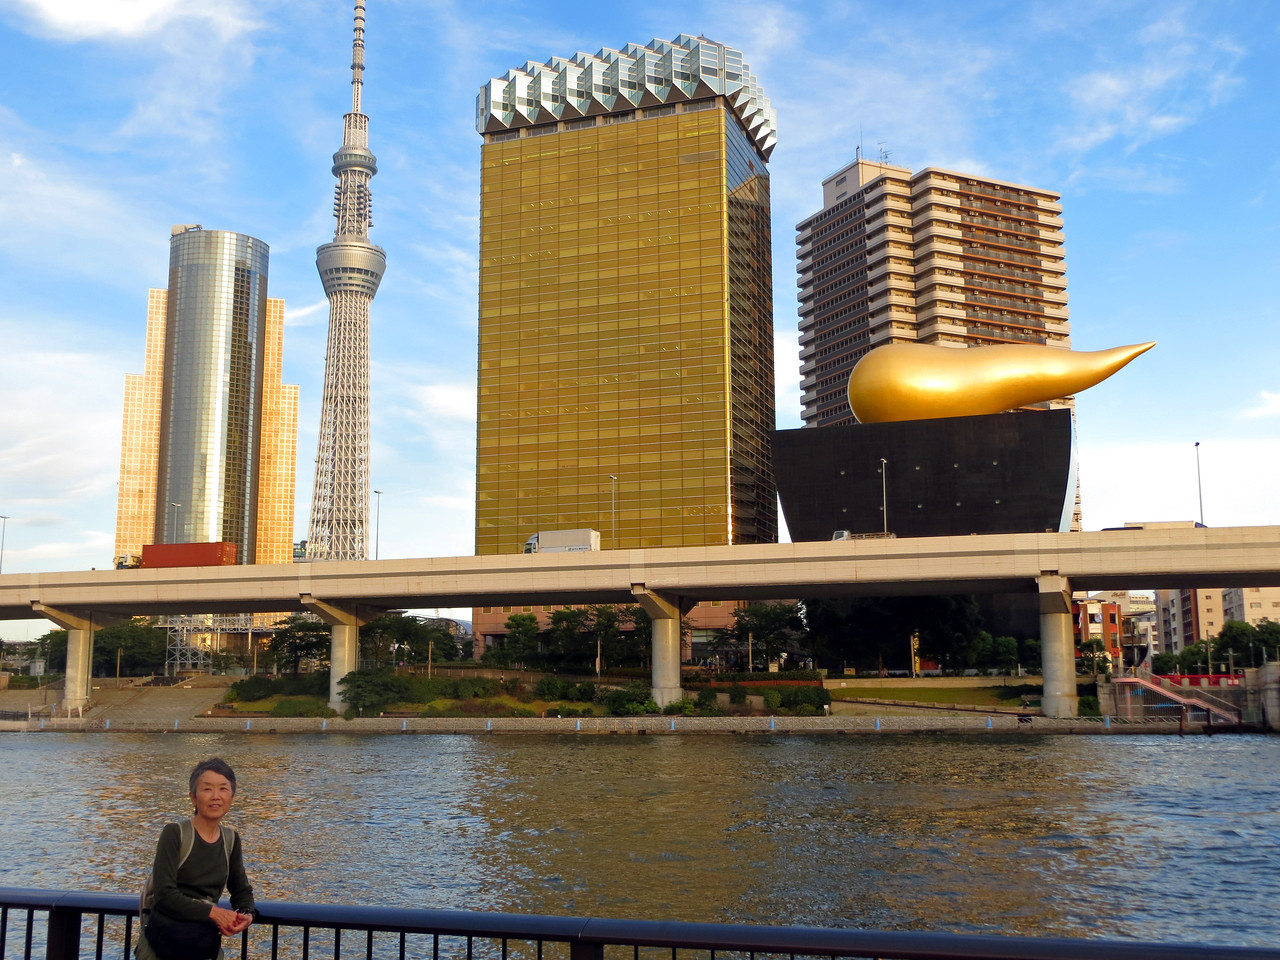 Asakusa Area - Sumida River and Tokyo Skytree in background.